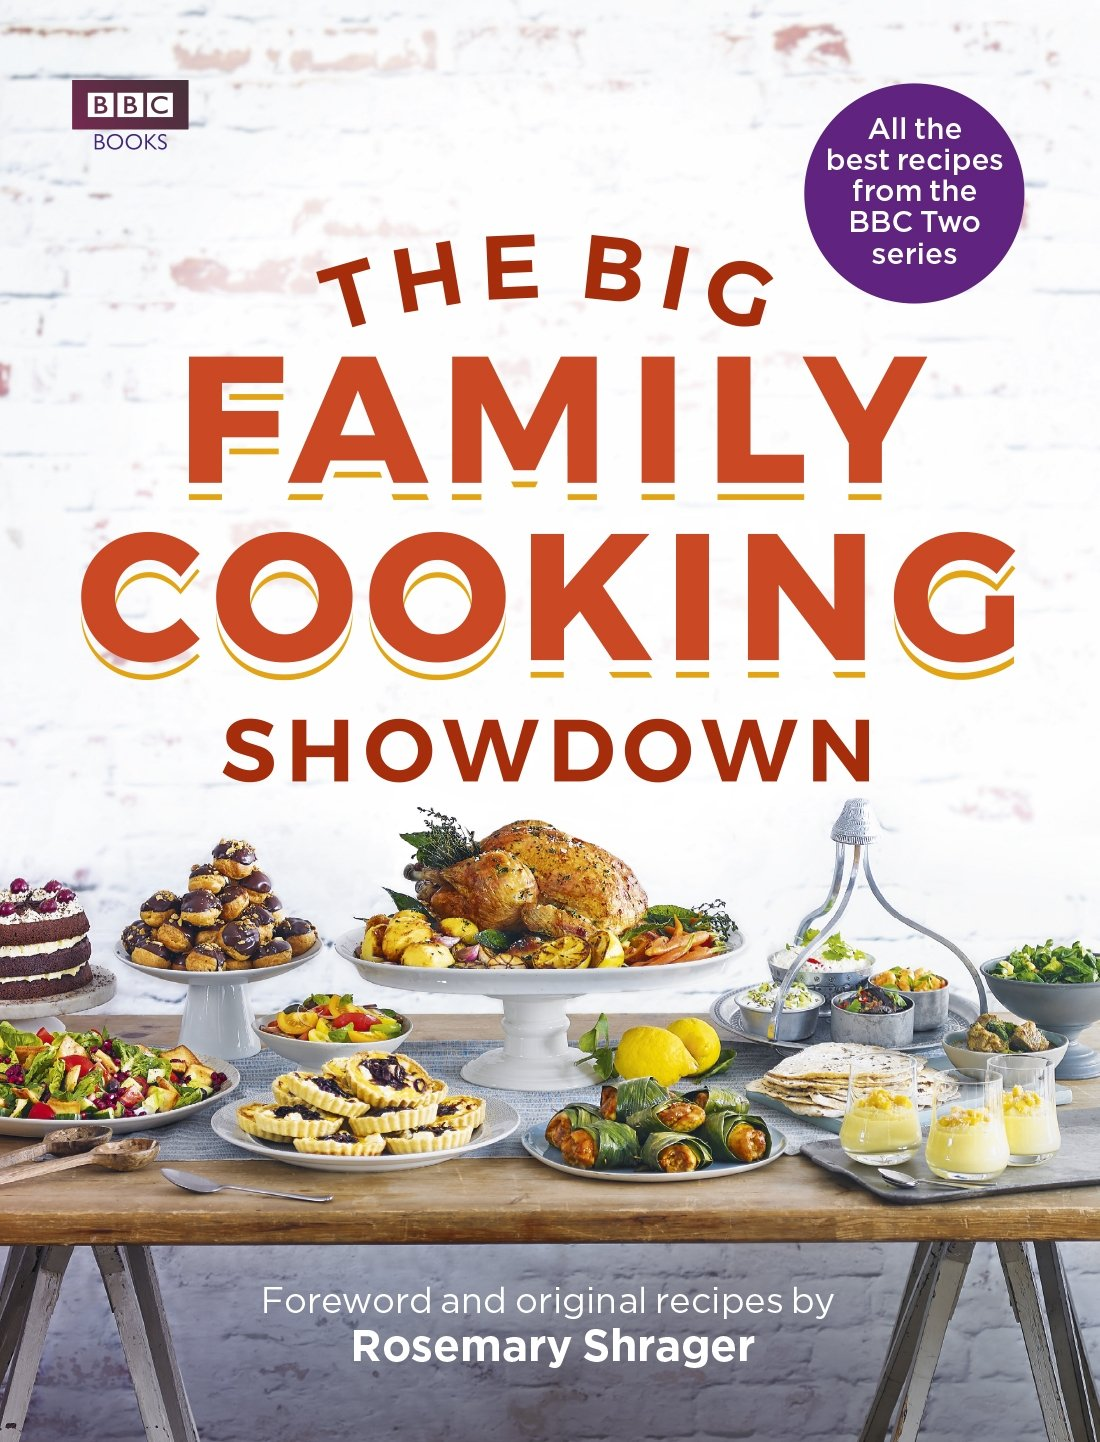 The big family cooking showdown all the best recipes from the bbc the big family cooking showdown all the best recipes from the bbc series amazon bbc books 9781785942808 books forumfinder Choice Image